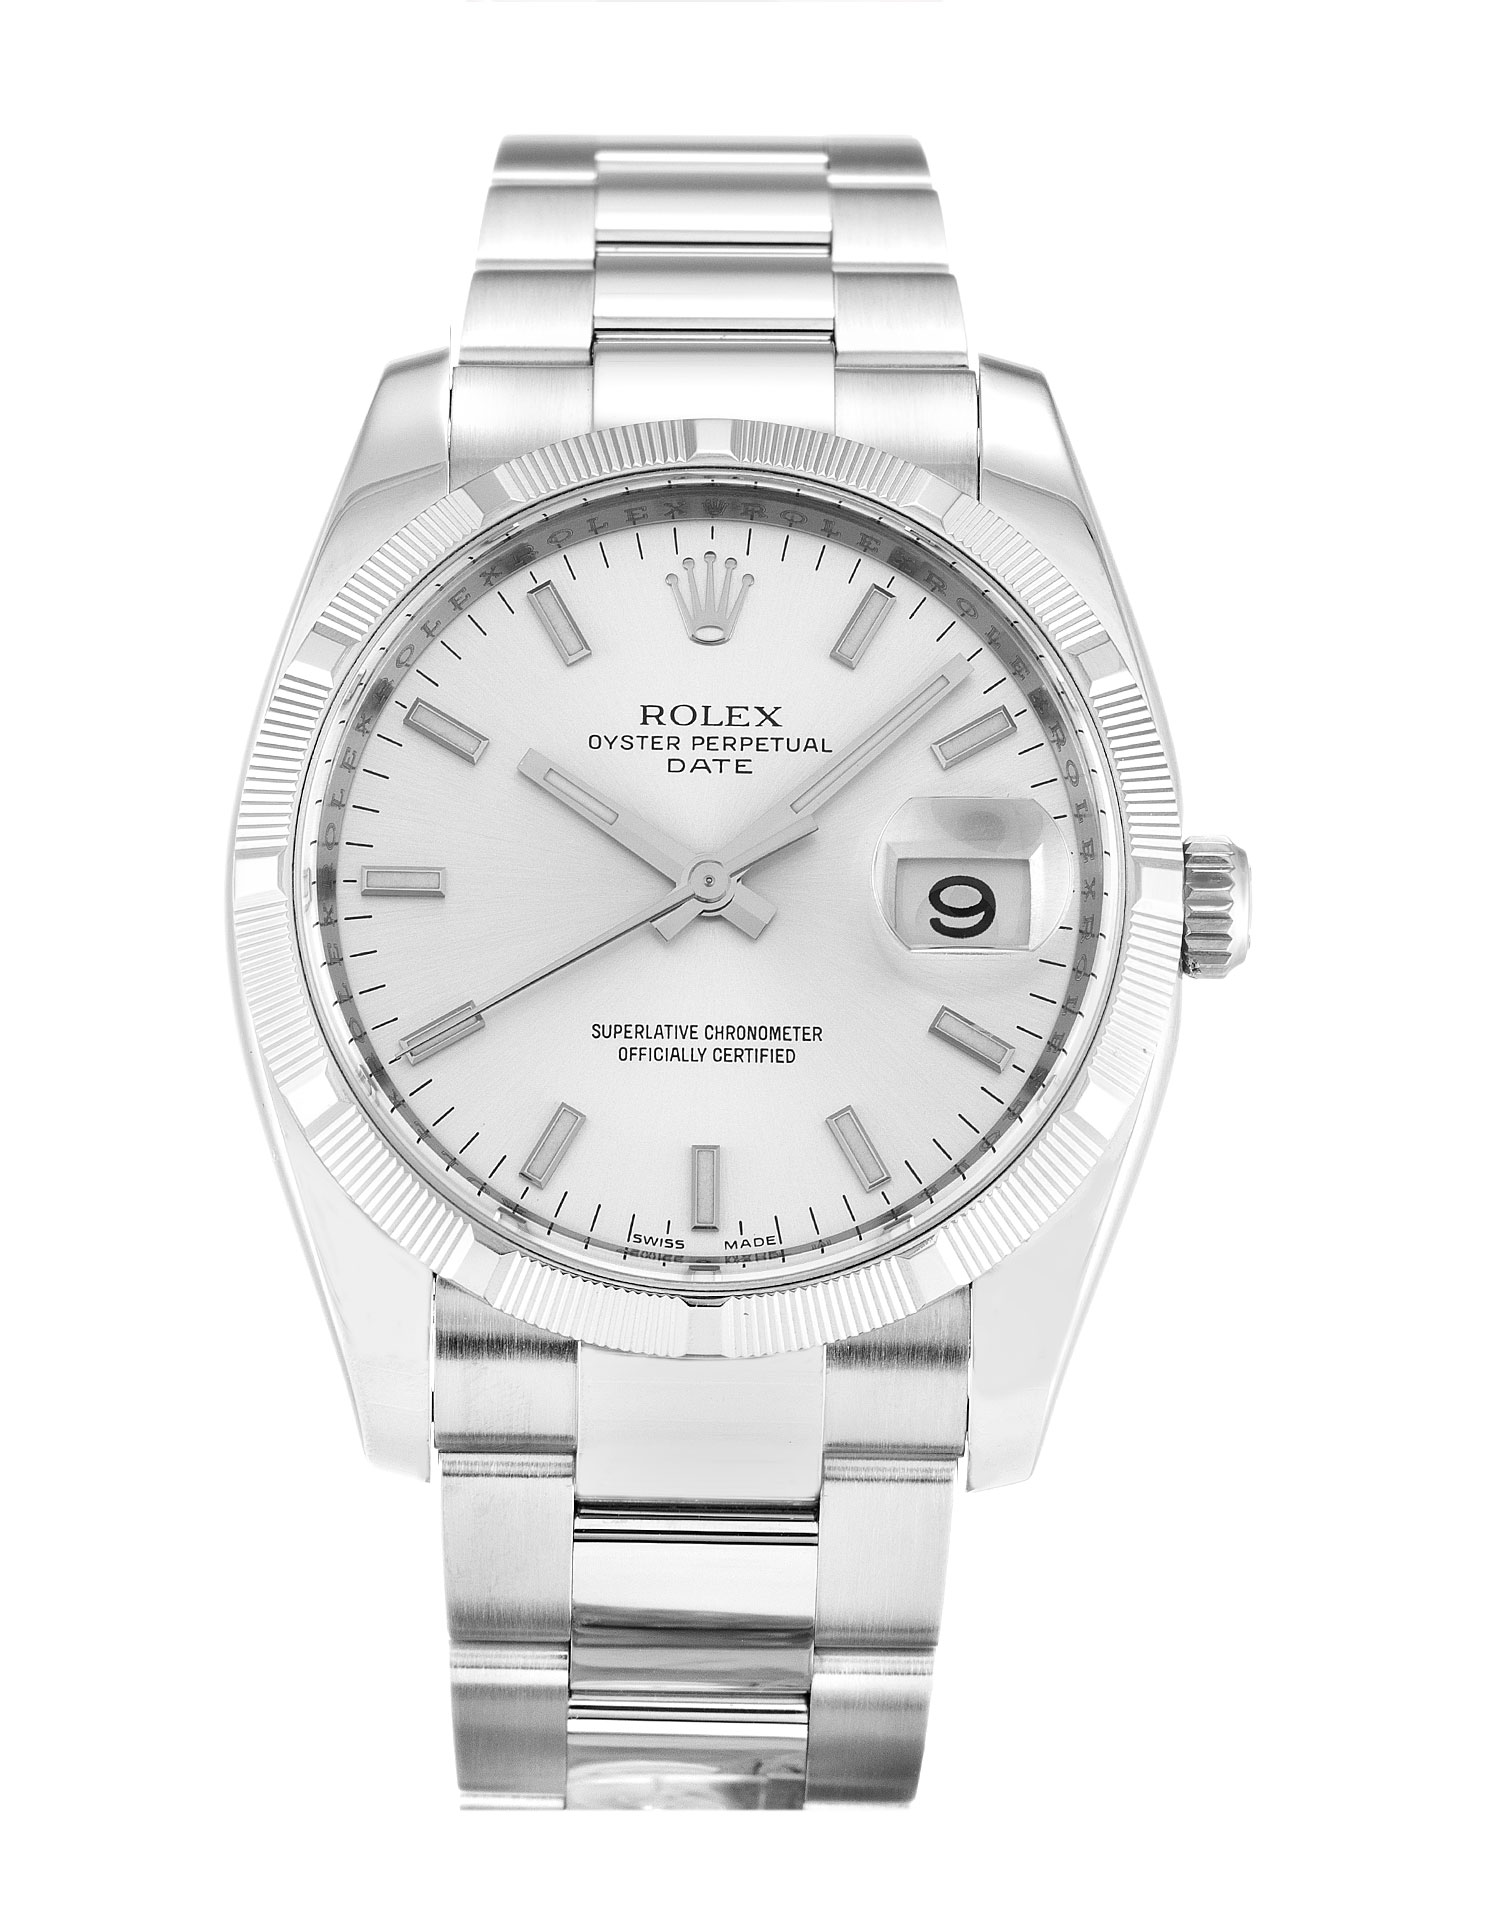 Rolex Oyster Perpetual Date 115210 Unisex 34 Mm Steel Case Automatic Movement – iapac.to